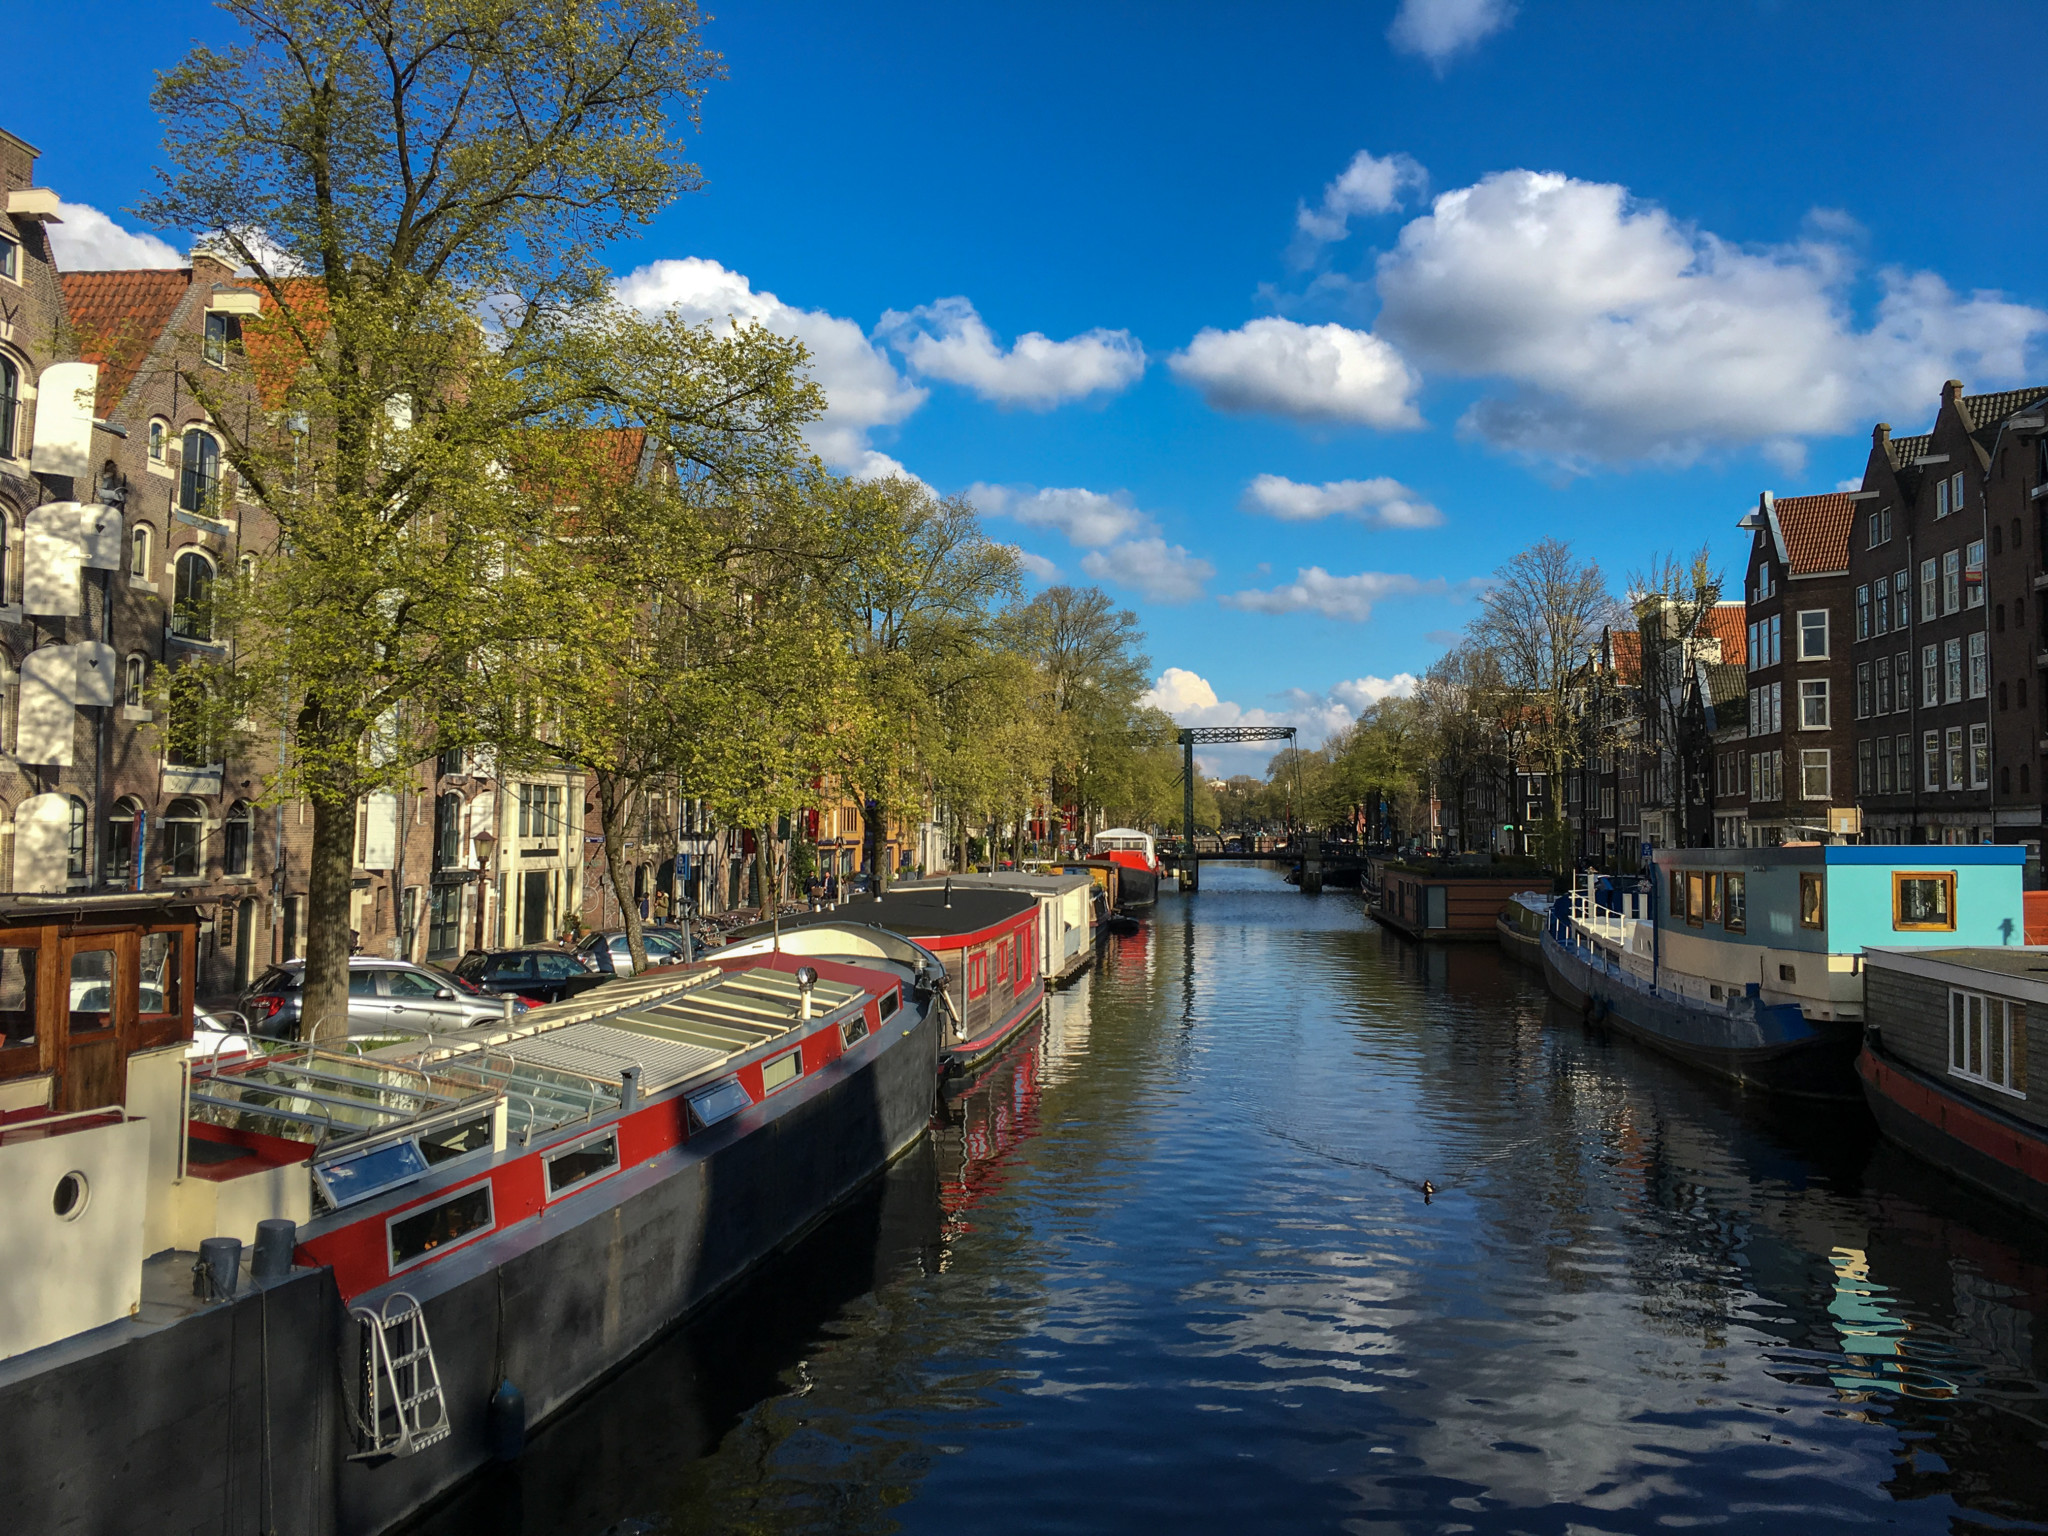 Grachtenblick in Amsterdam